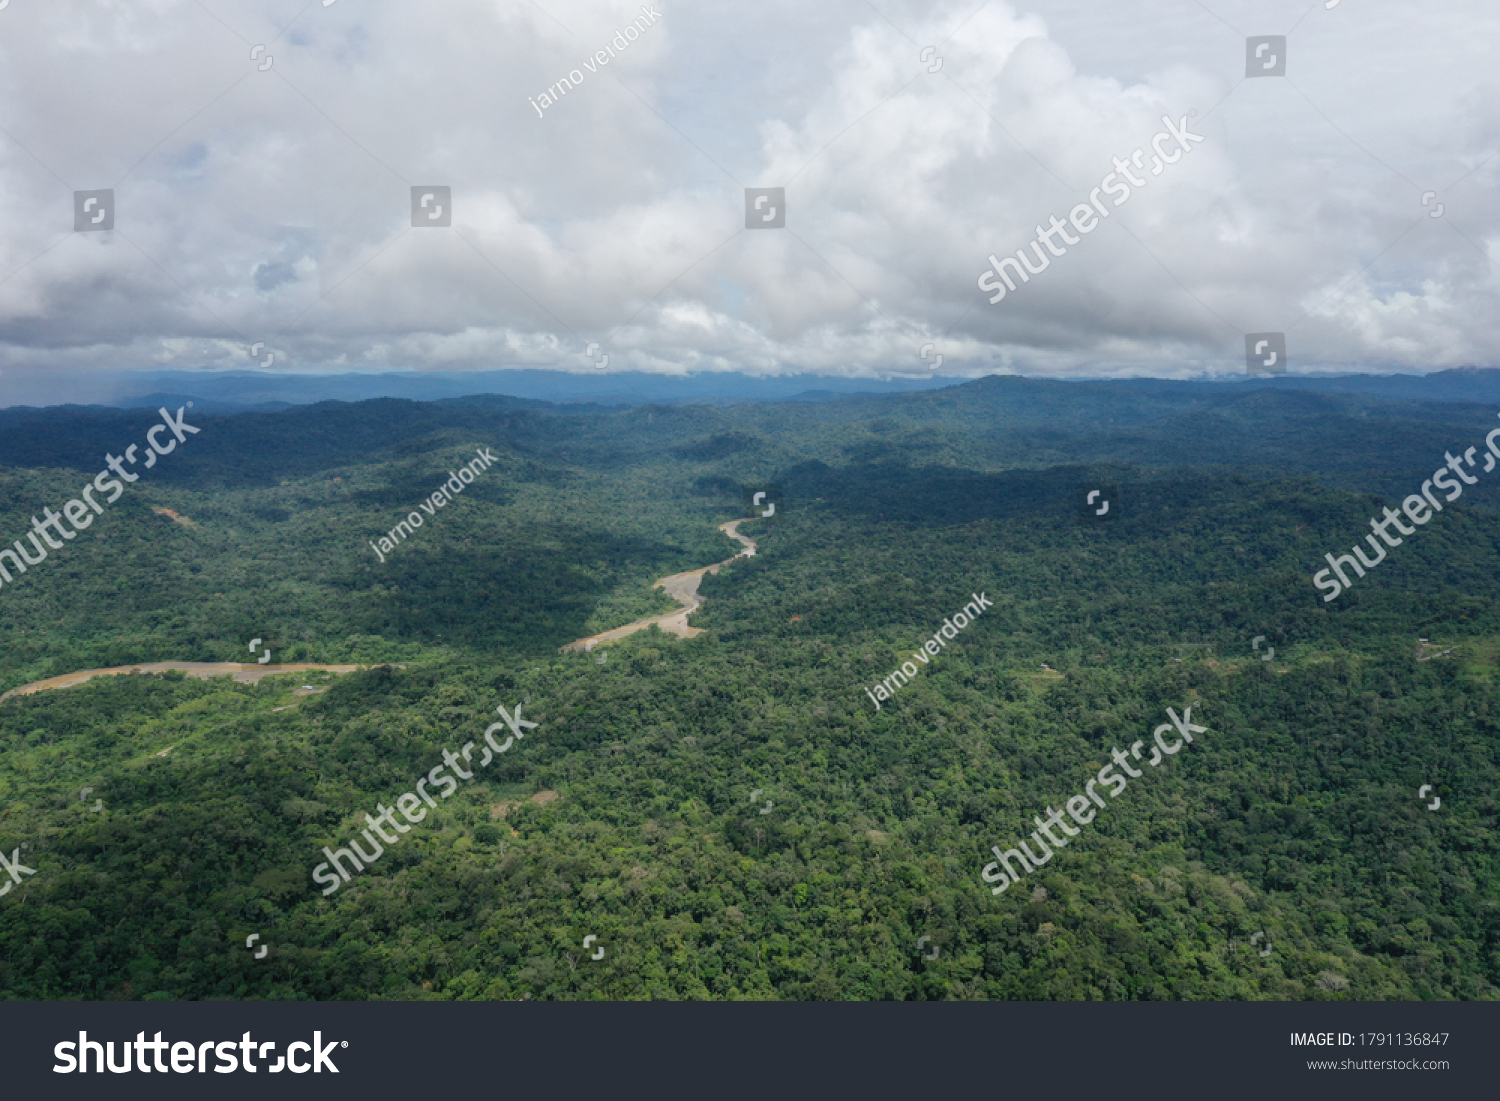 Aerial view of the Amazon with a large brown river meandering through the landscape and shadows of clouds over the rainforest